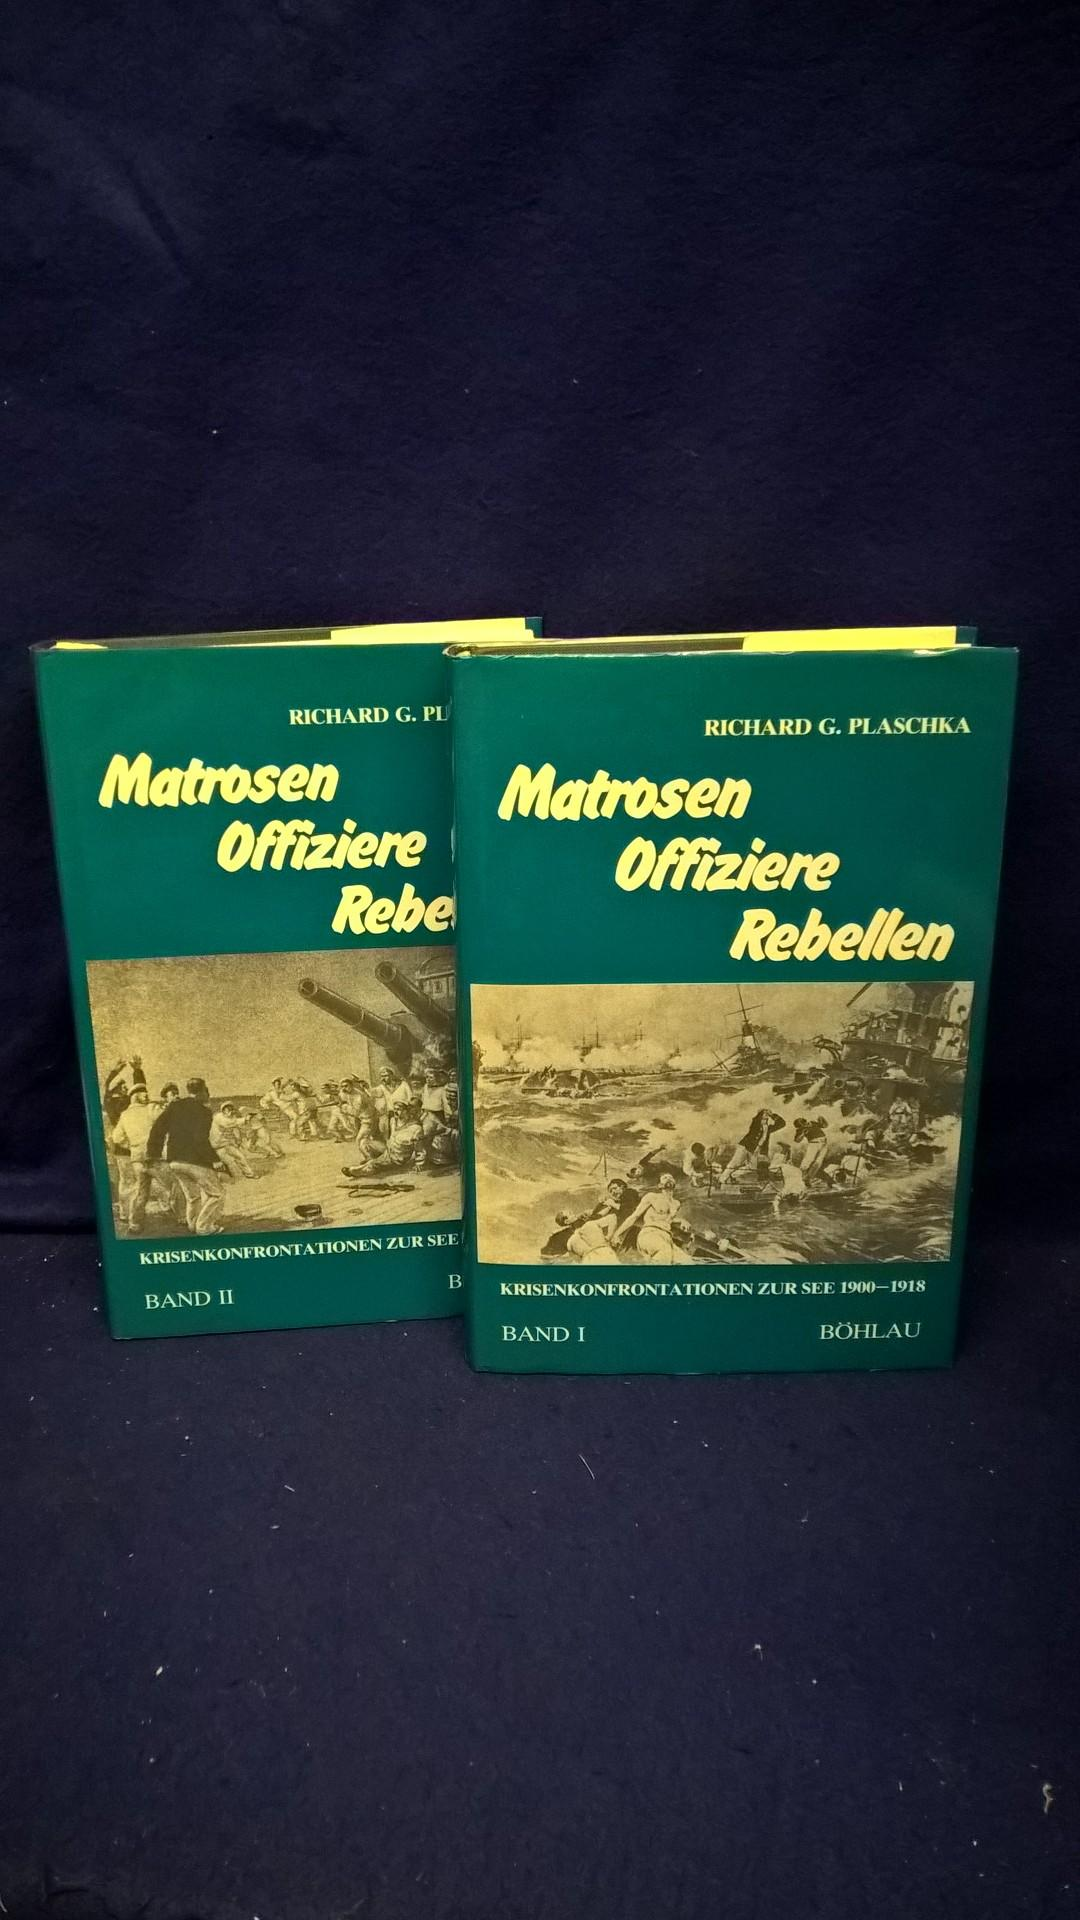 Matrosen Offiziere Rebellen. Krisenkonfrontationen zur See 1900 - 1918. Band 1+2, so komplett!